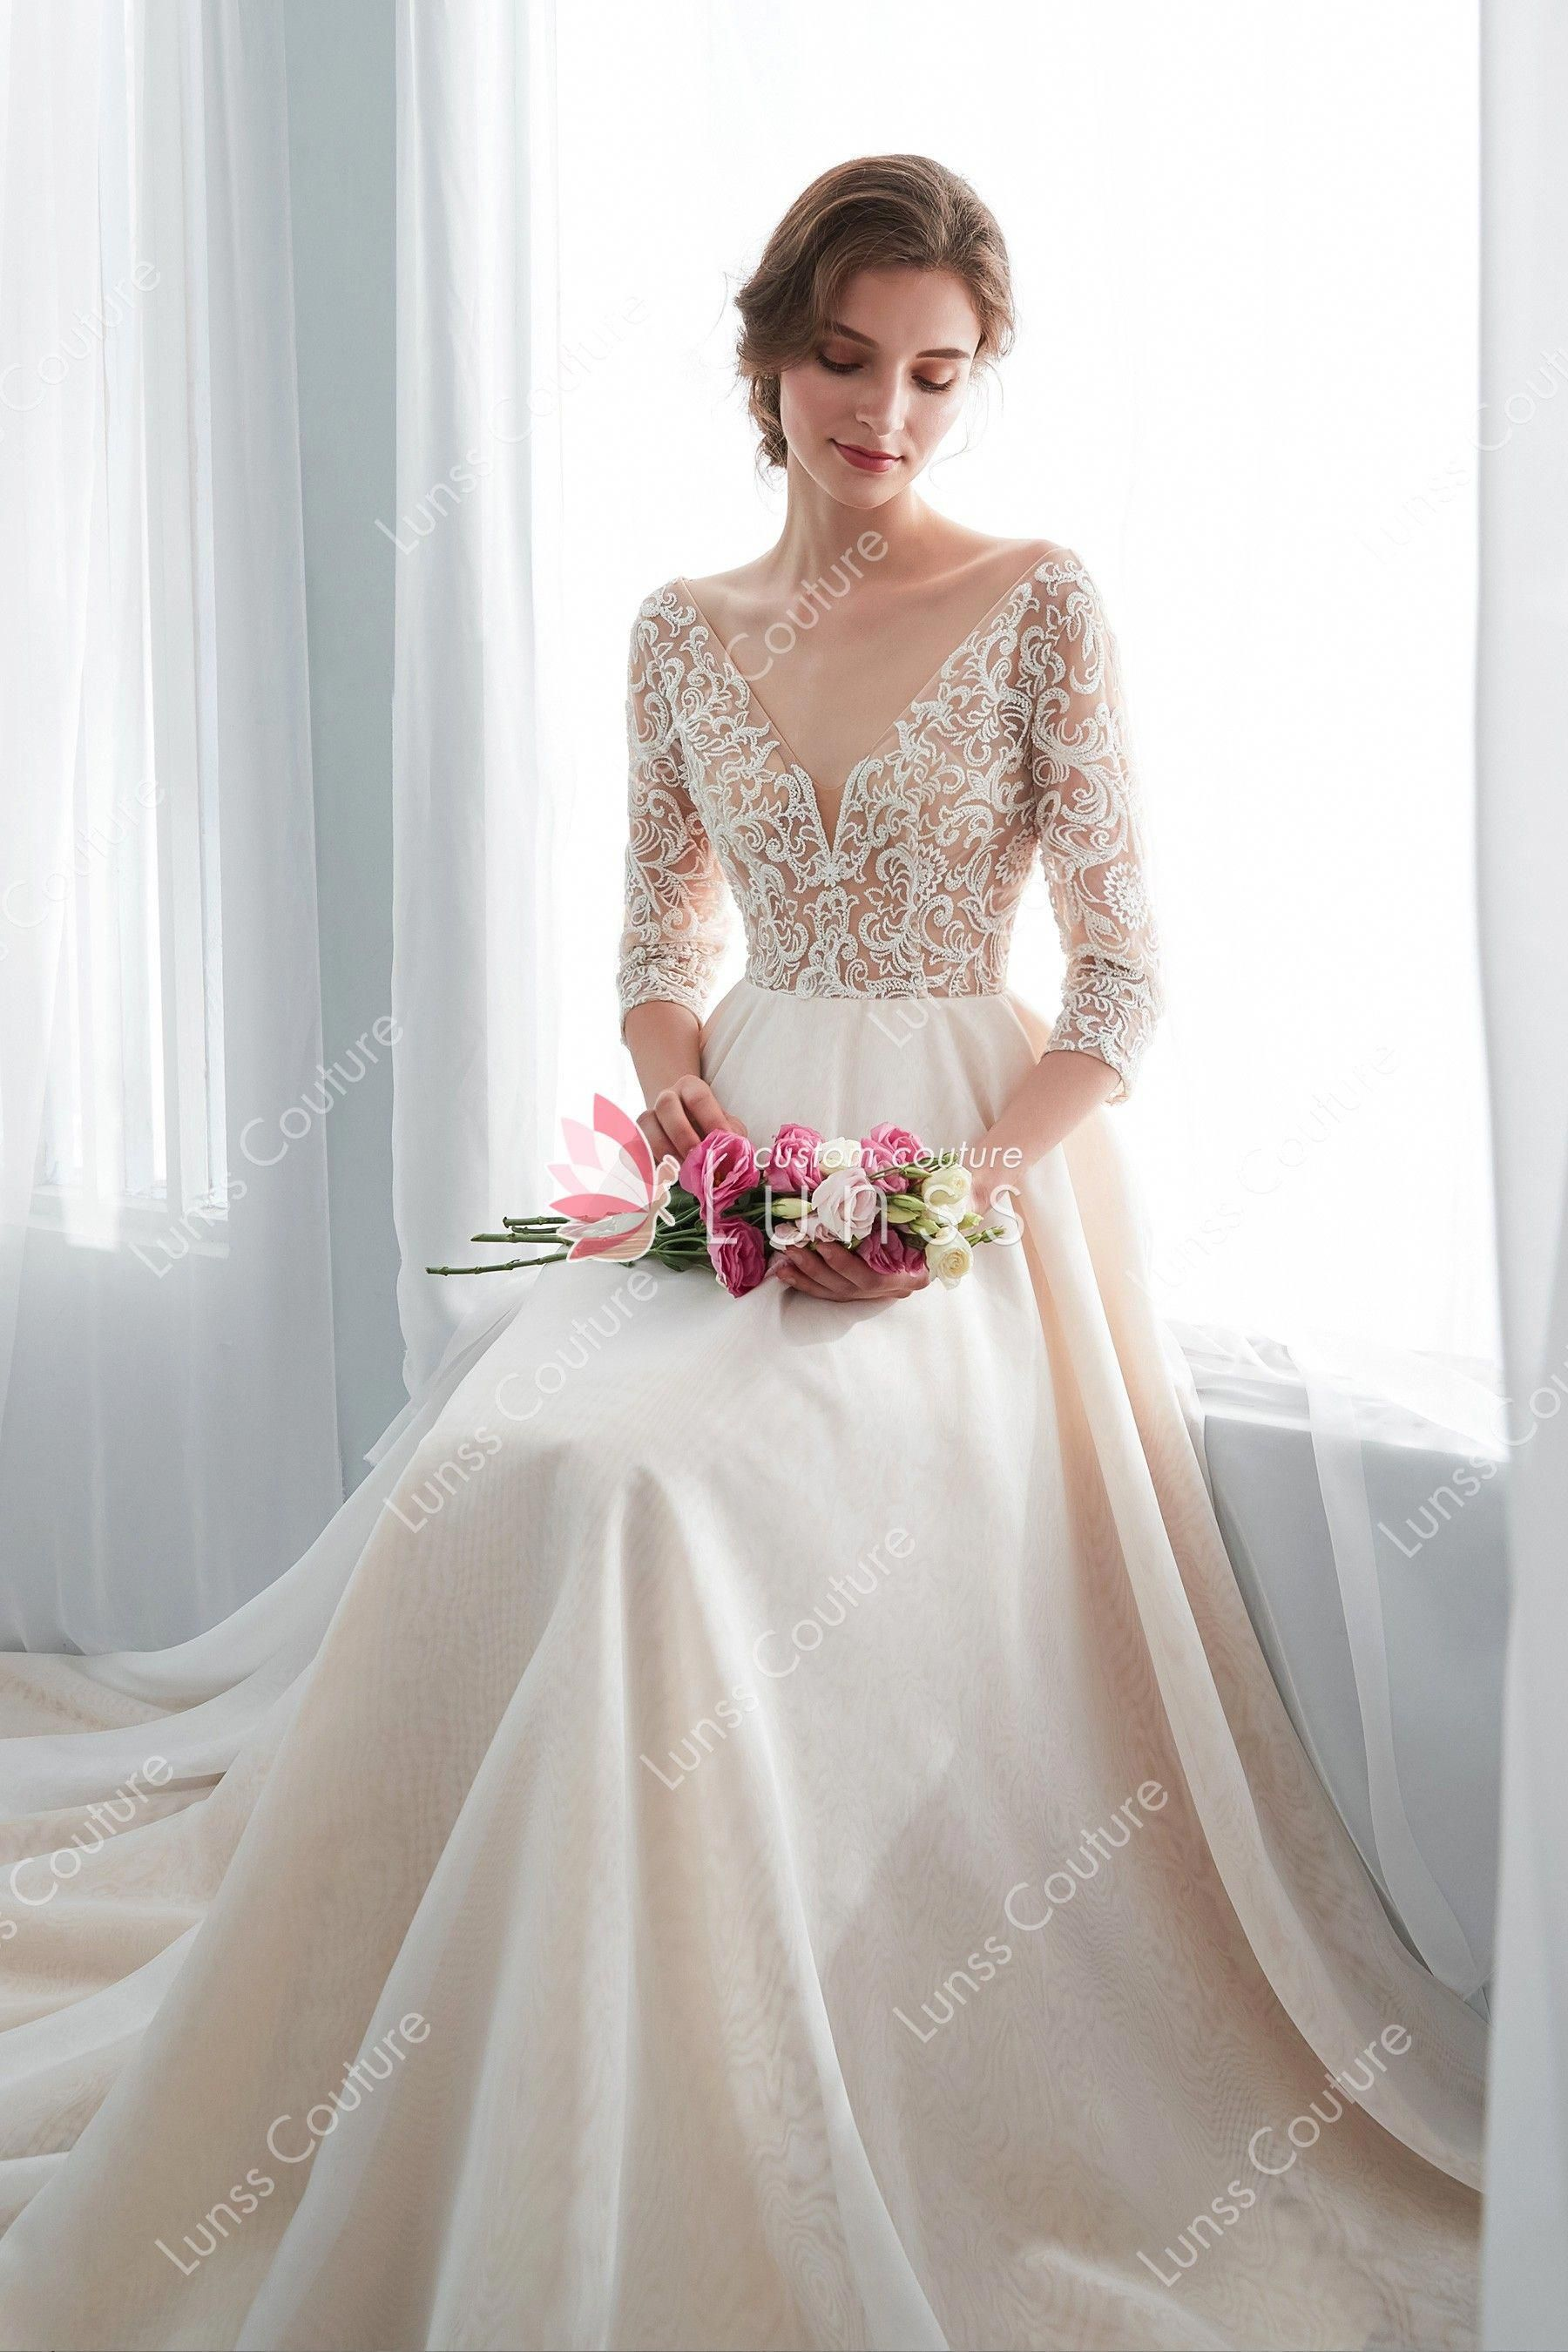 Champagne Beaded Lace Organza Wedding Gown With 34 Sleeve Champagneweddingdress Wedding Dress Champagne Conservative Wedding Gowns Wedding Dress Long Sleeve [ 2700 x 1800 Pixel ]